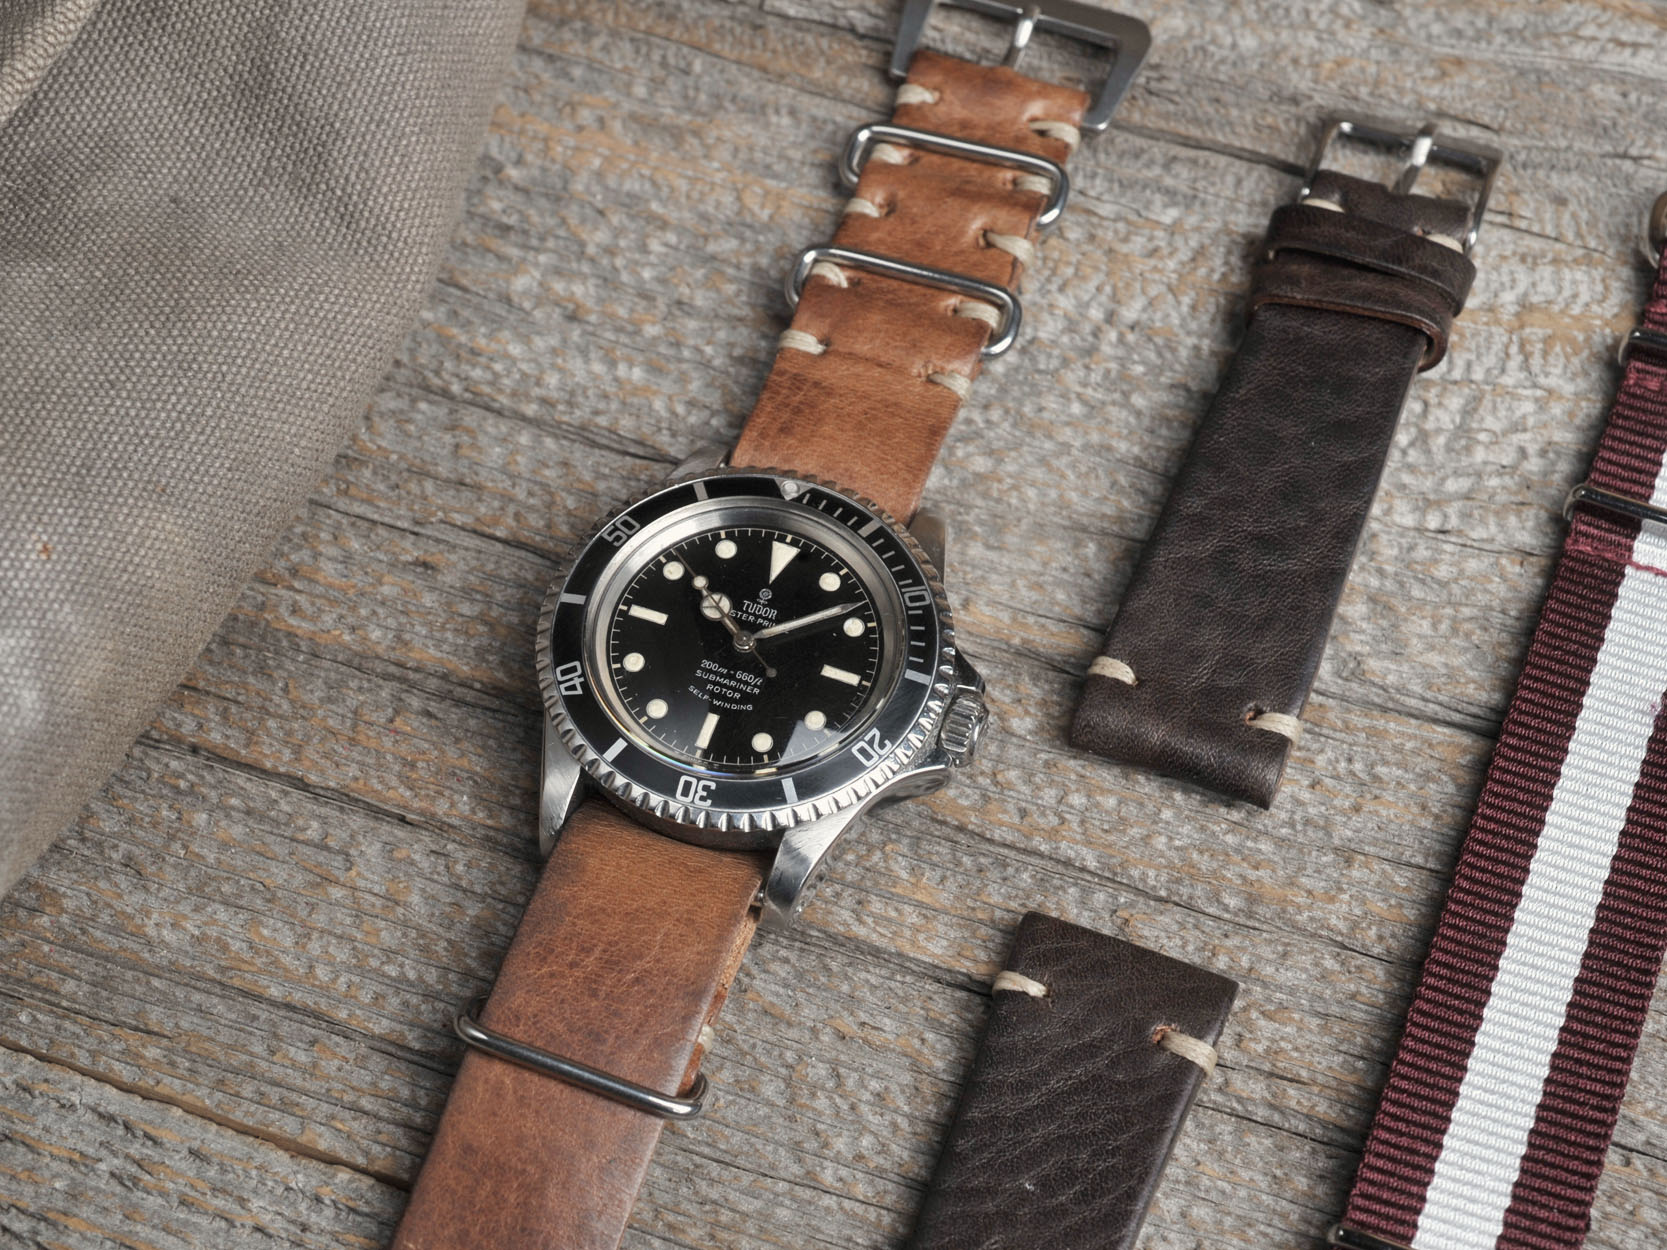 B&S Tudor W-23 7928 Ross 12